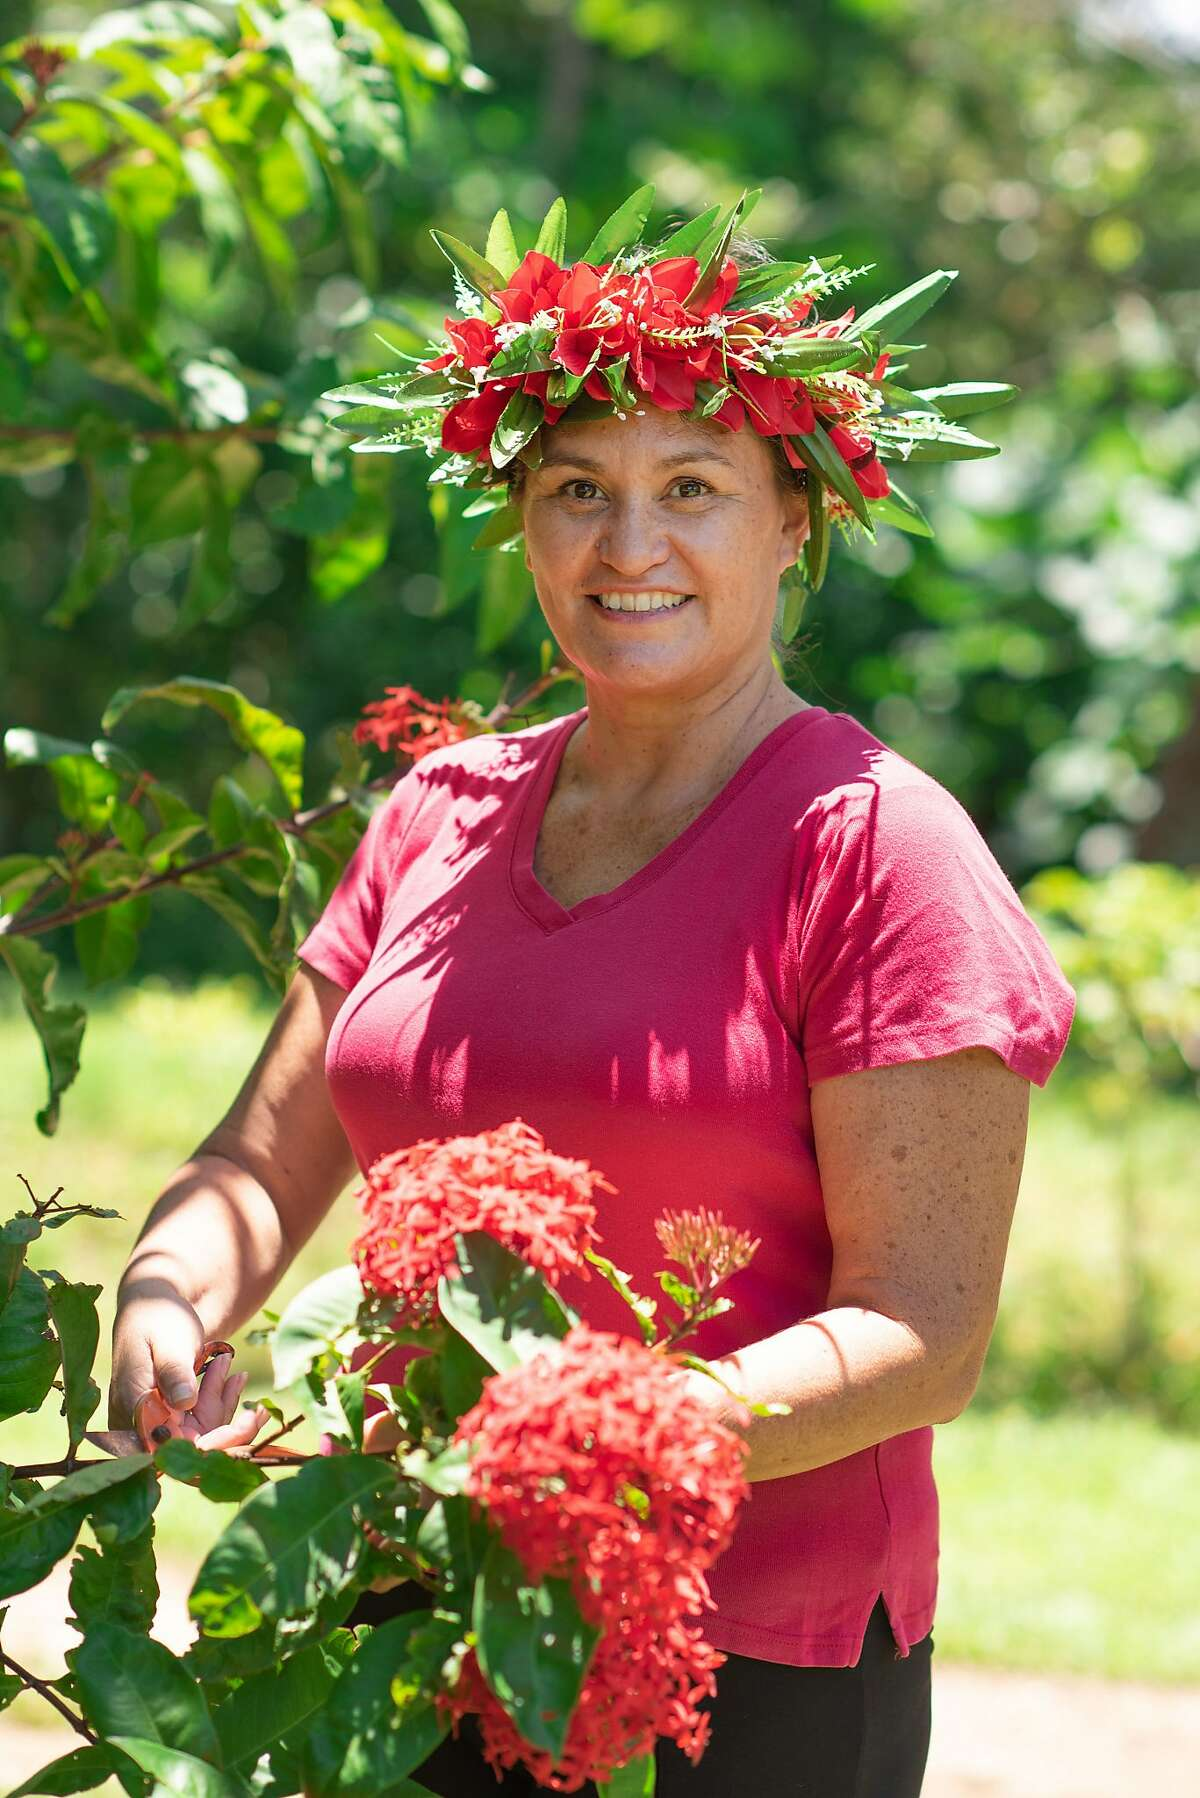 Jacqueline Evans, 48, of the Cook Islands. Evans, a marine conservationist, spend five years rallying support for protection of 763,000 square miles of ocean around the Cook Islands, in the South Pacific, getting the government to agree to create 15 marine protected areas. Evans used what is known as the ra�ui, a traditional Polynesian approach to marine management, and even organized a logo competition. The government in 2017 approved what is now known as �Marae Moana,� which means sacred ocean, despite opposition from some Cook Islands officials who caused a national uproar when they took money for fishing licenses in the area. Commercial fishing and seabed mining is now banned within 50 nautical miles of the 15 Cook Islands.